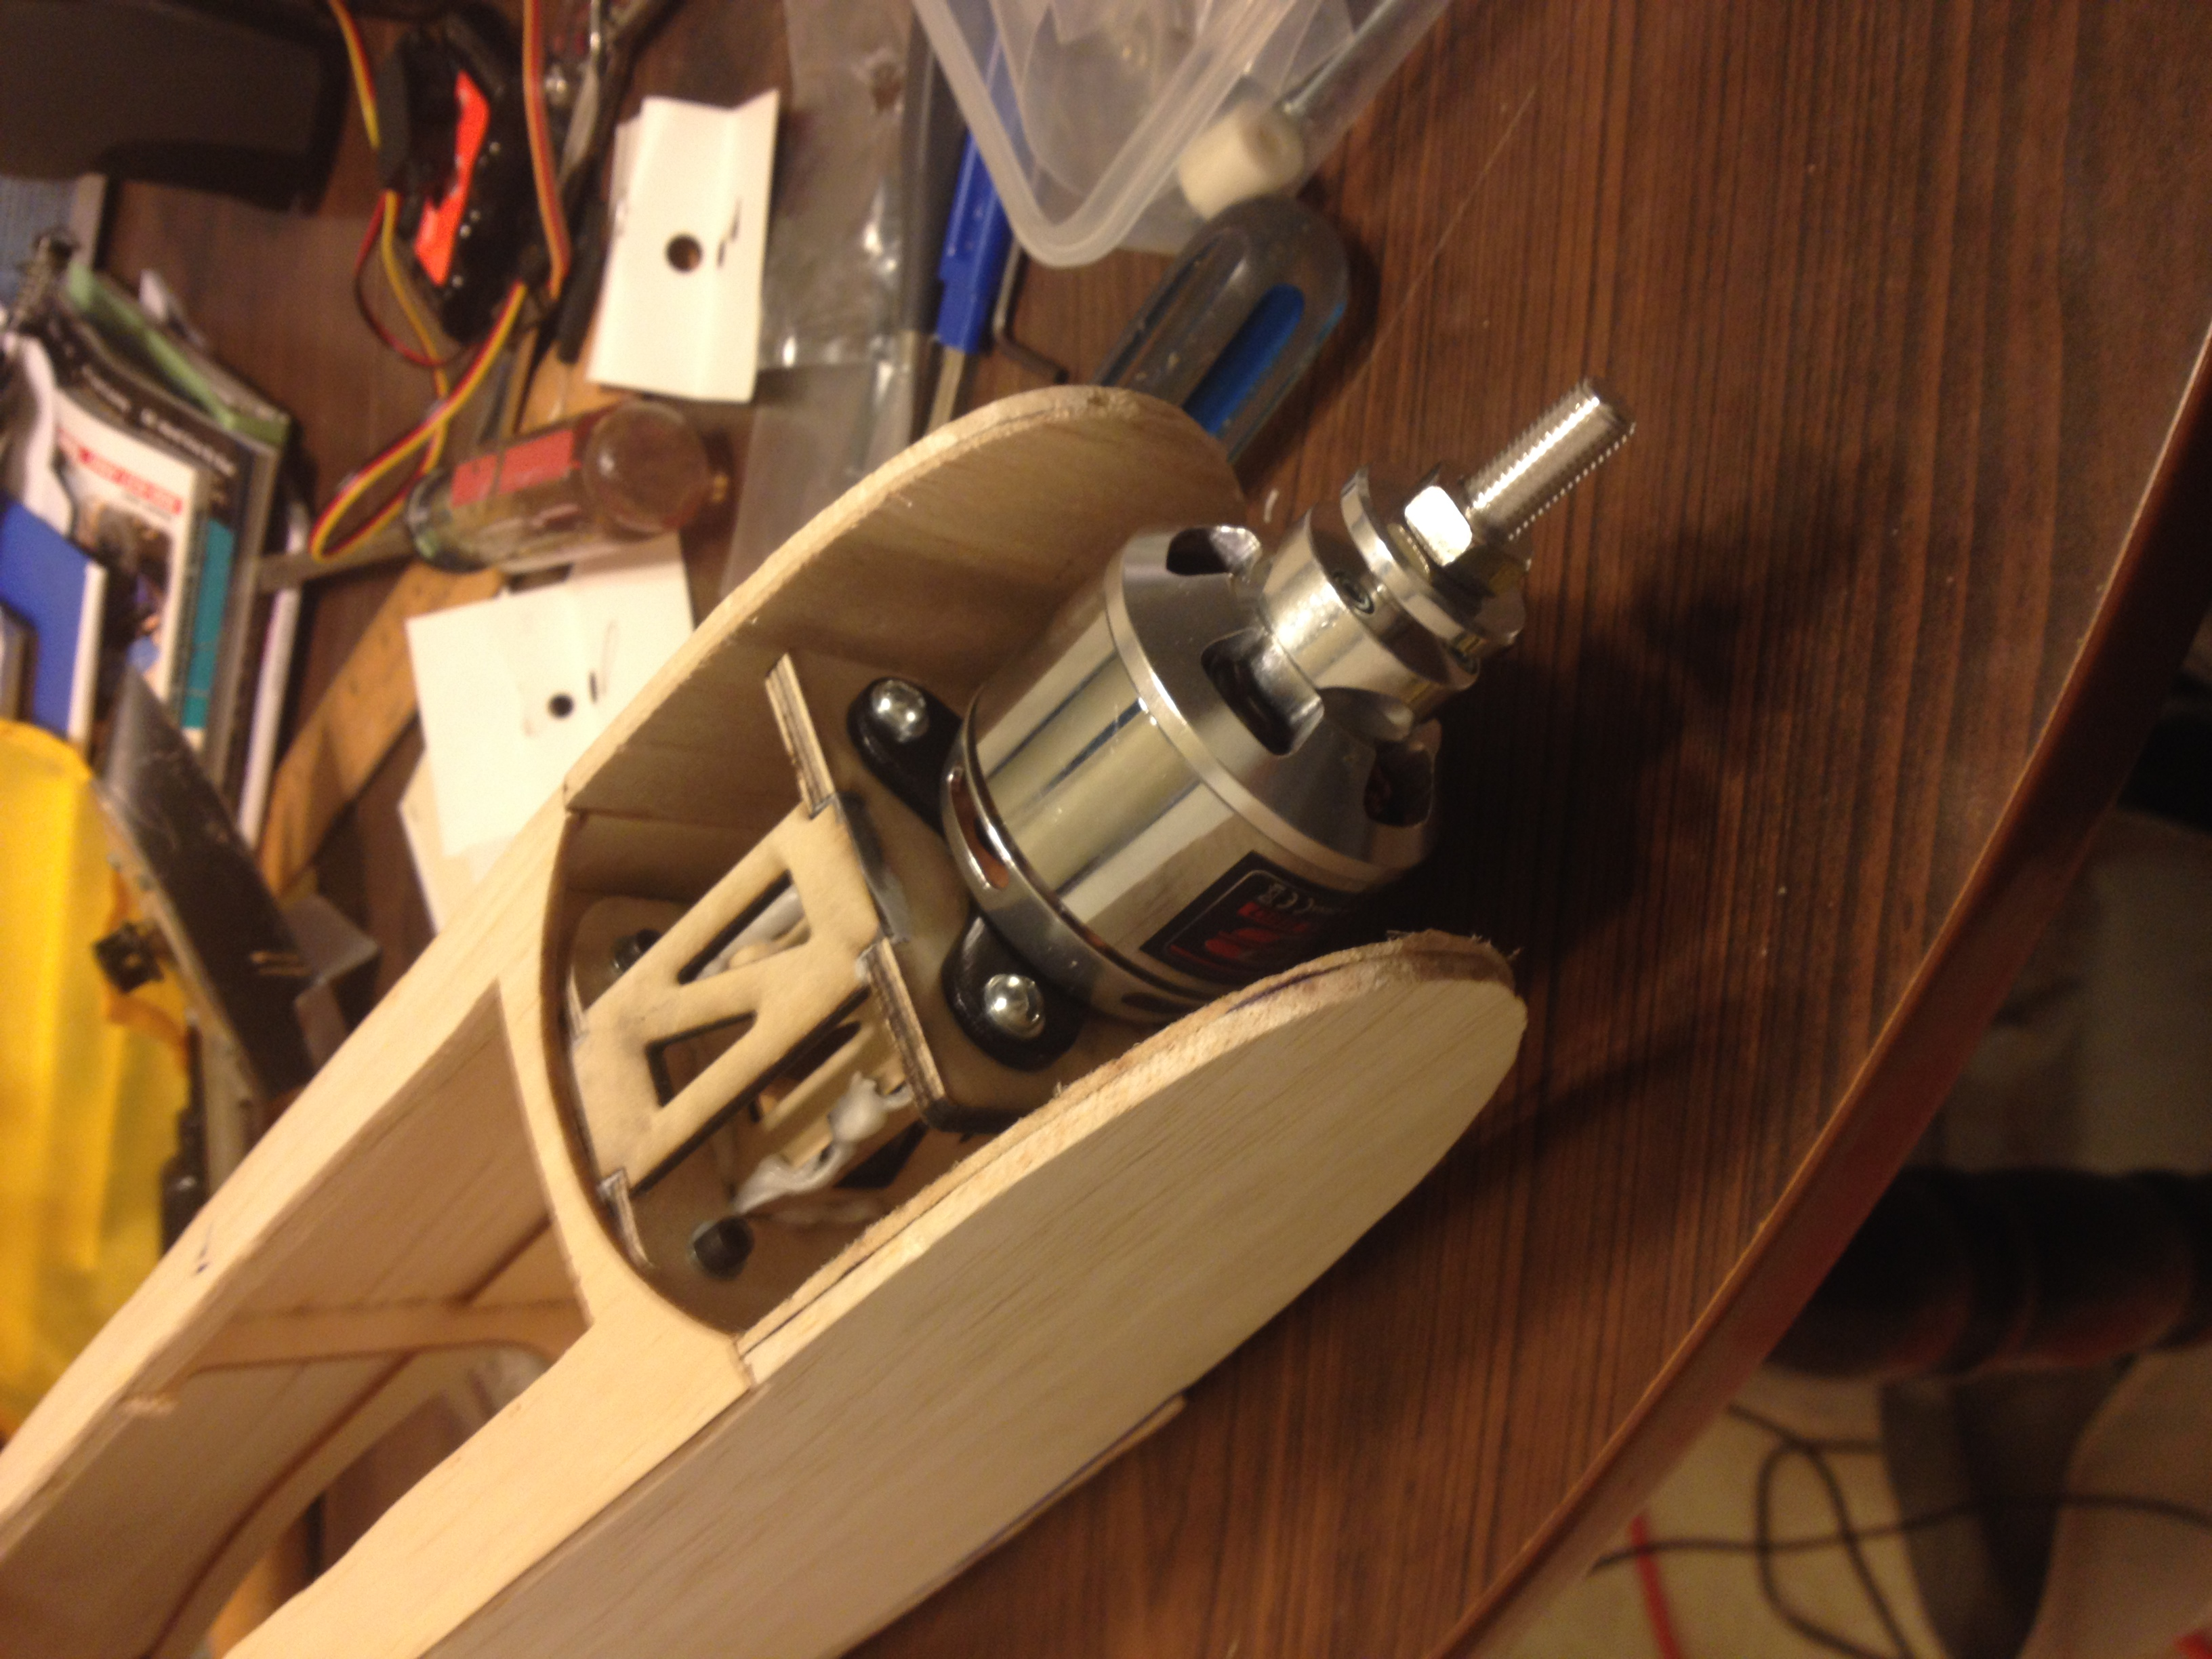 Motor mount box for radio control airplane.  I made it at Techshop